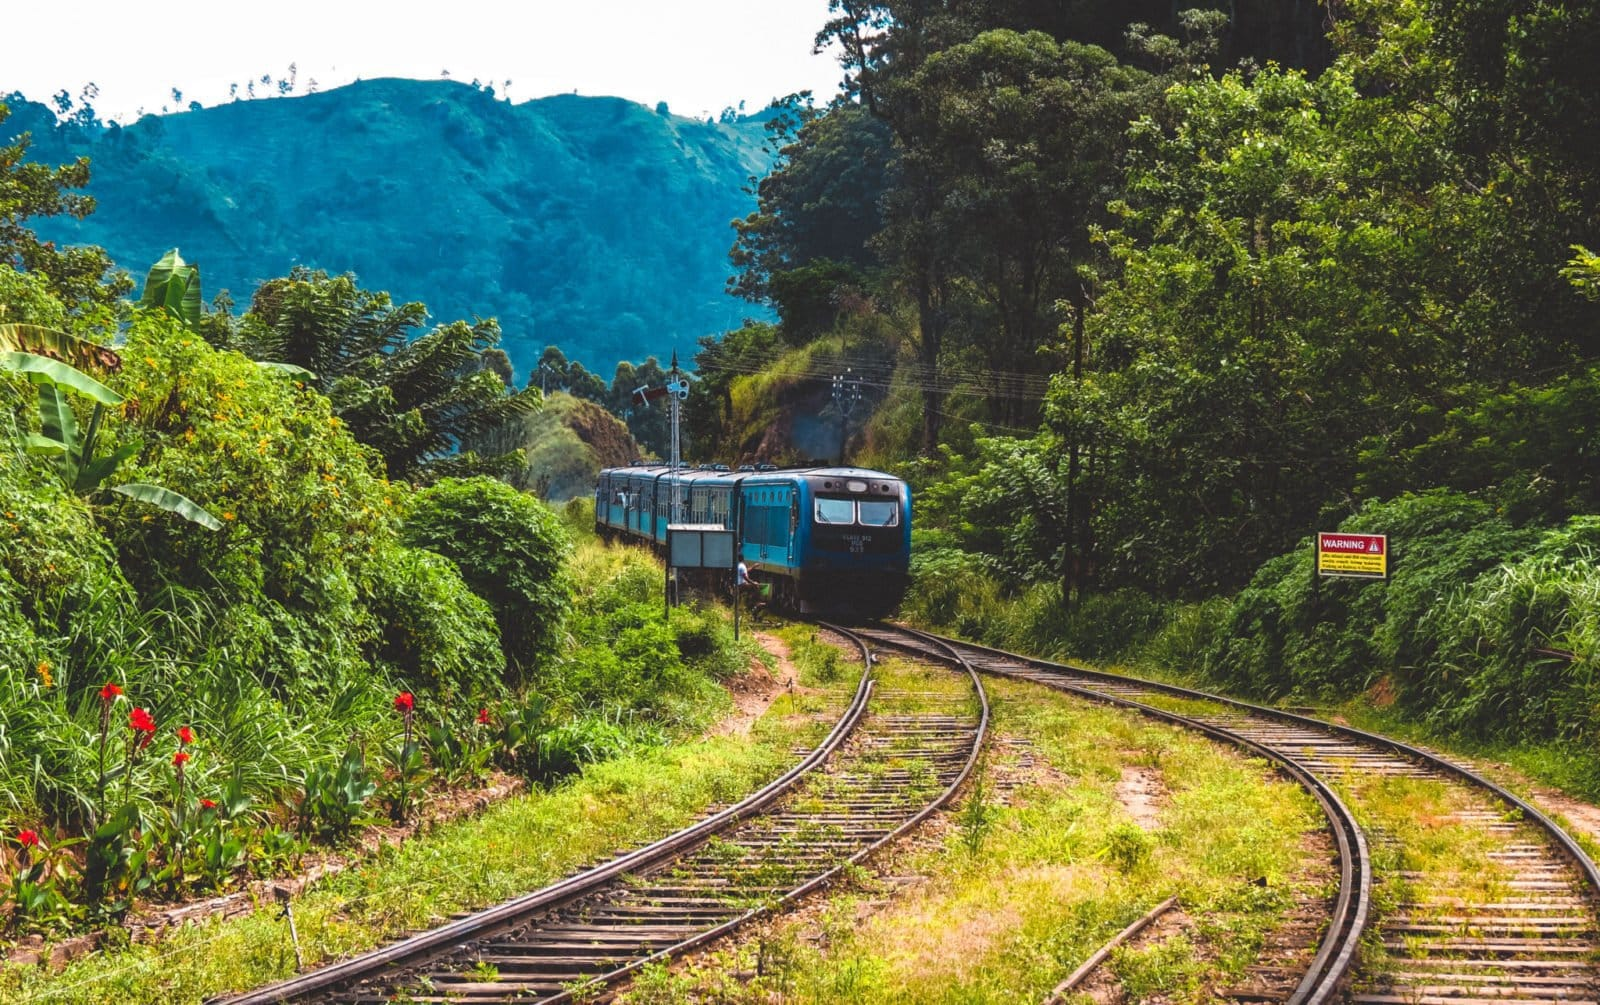 Train pulling into Ella Station, Sri Lanka